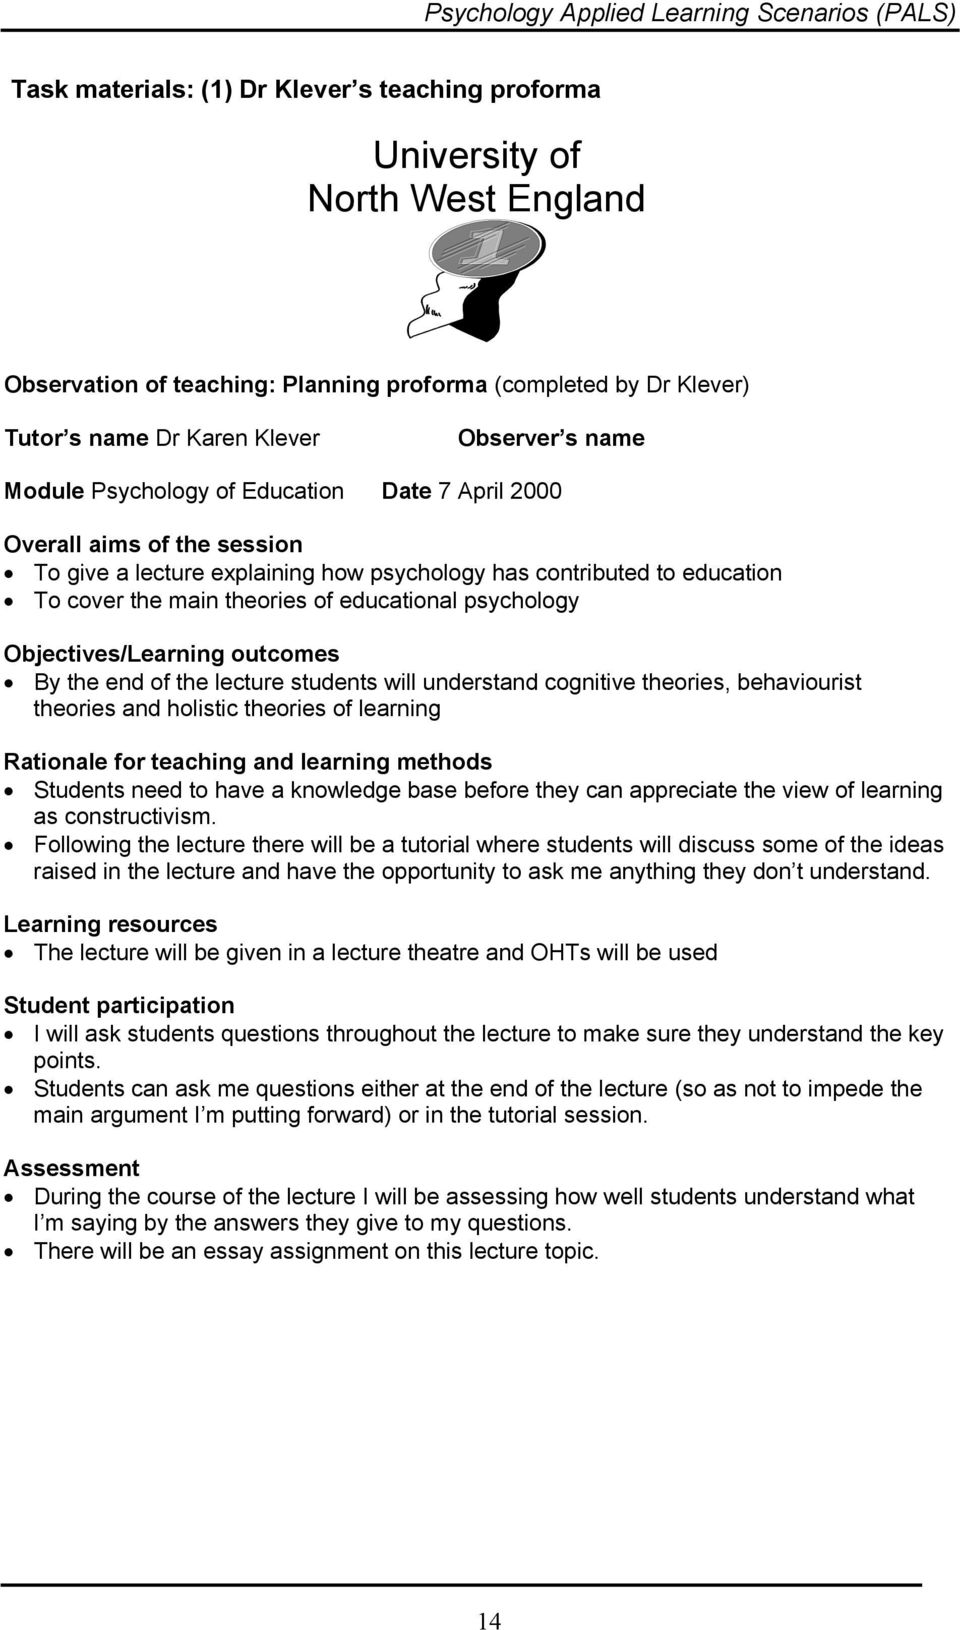 psychology Objectives/Learning outcomes By the end of the lecture students will understand cognitive theories, behaviourist theories and holistic theories of learning Rationale for teaching and